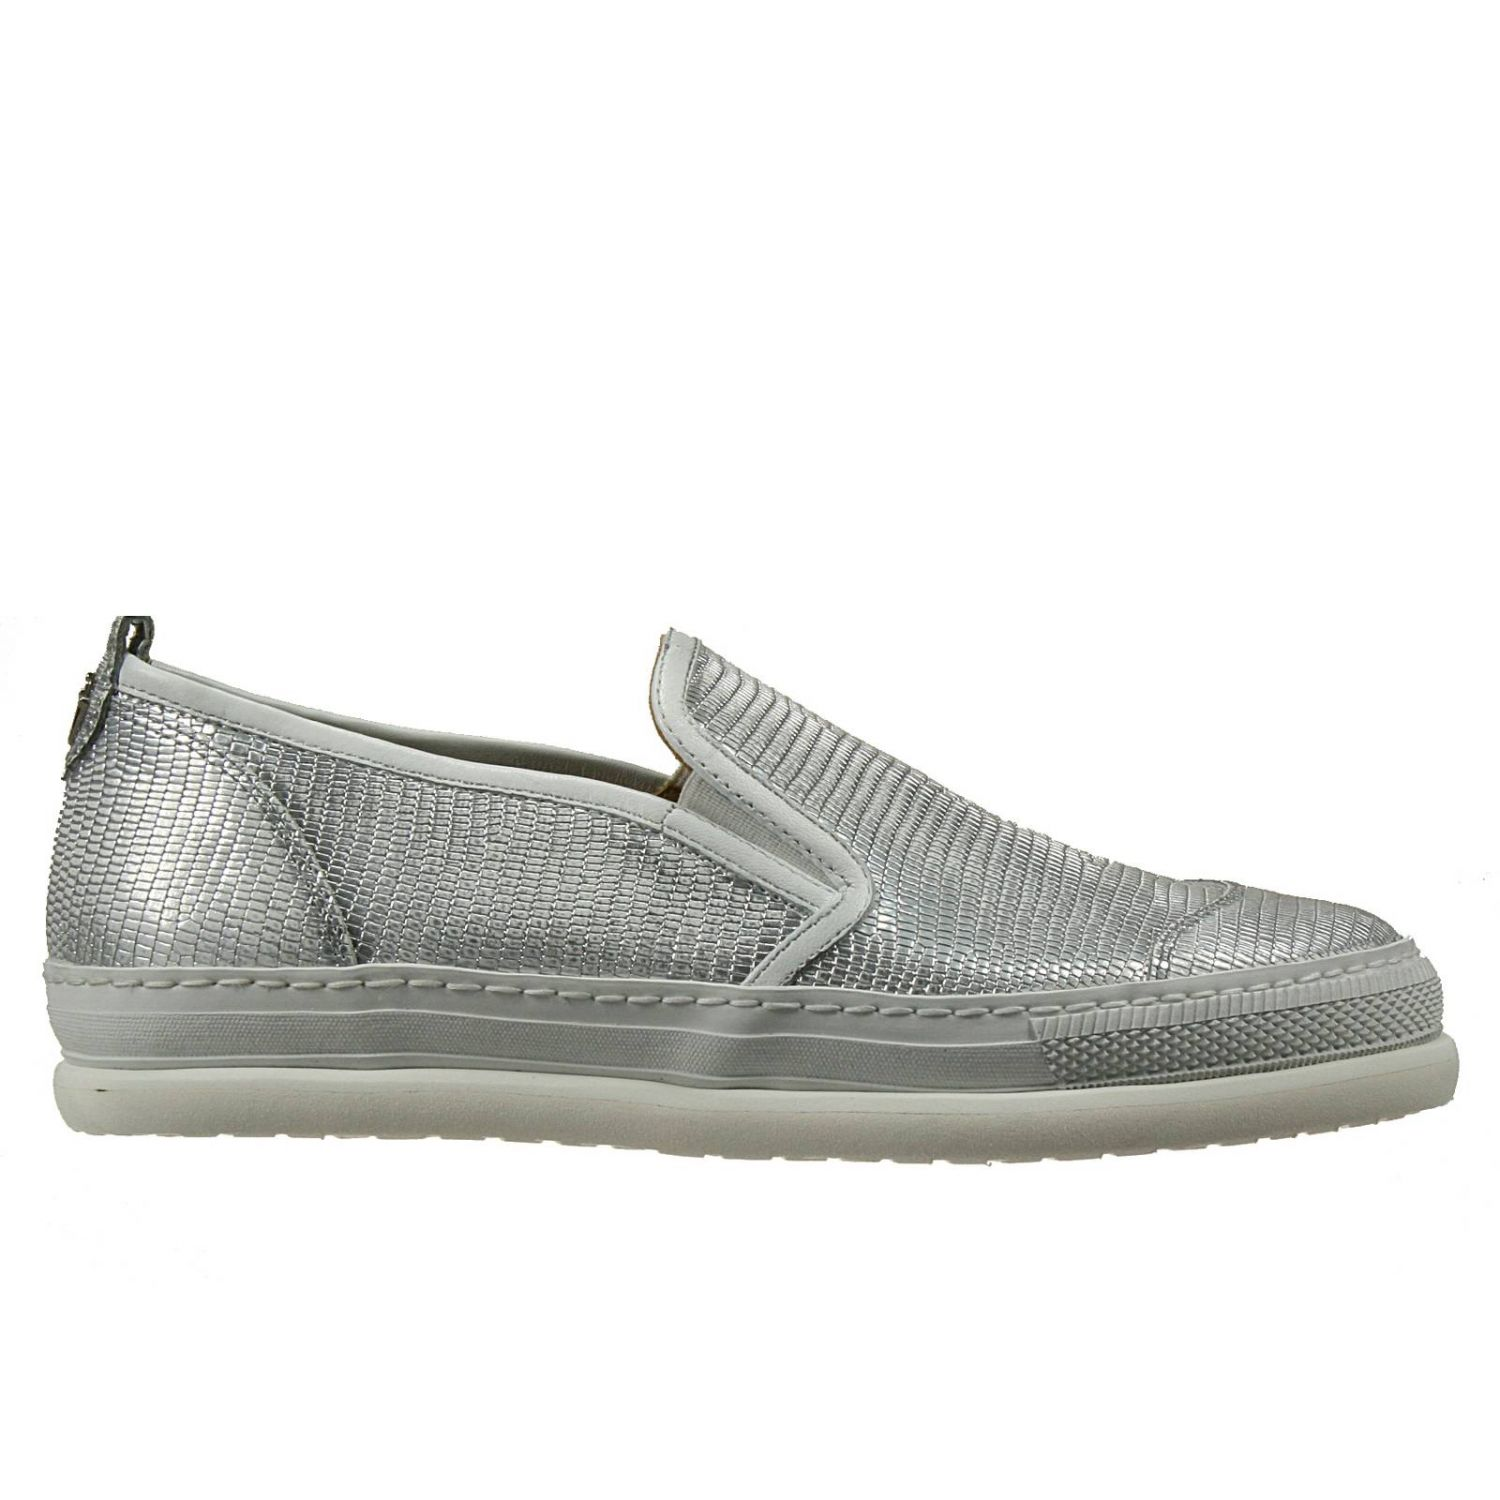 Sneakers Shoes Slip On Leather Printed Lizard 591197